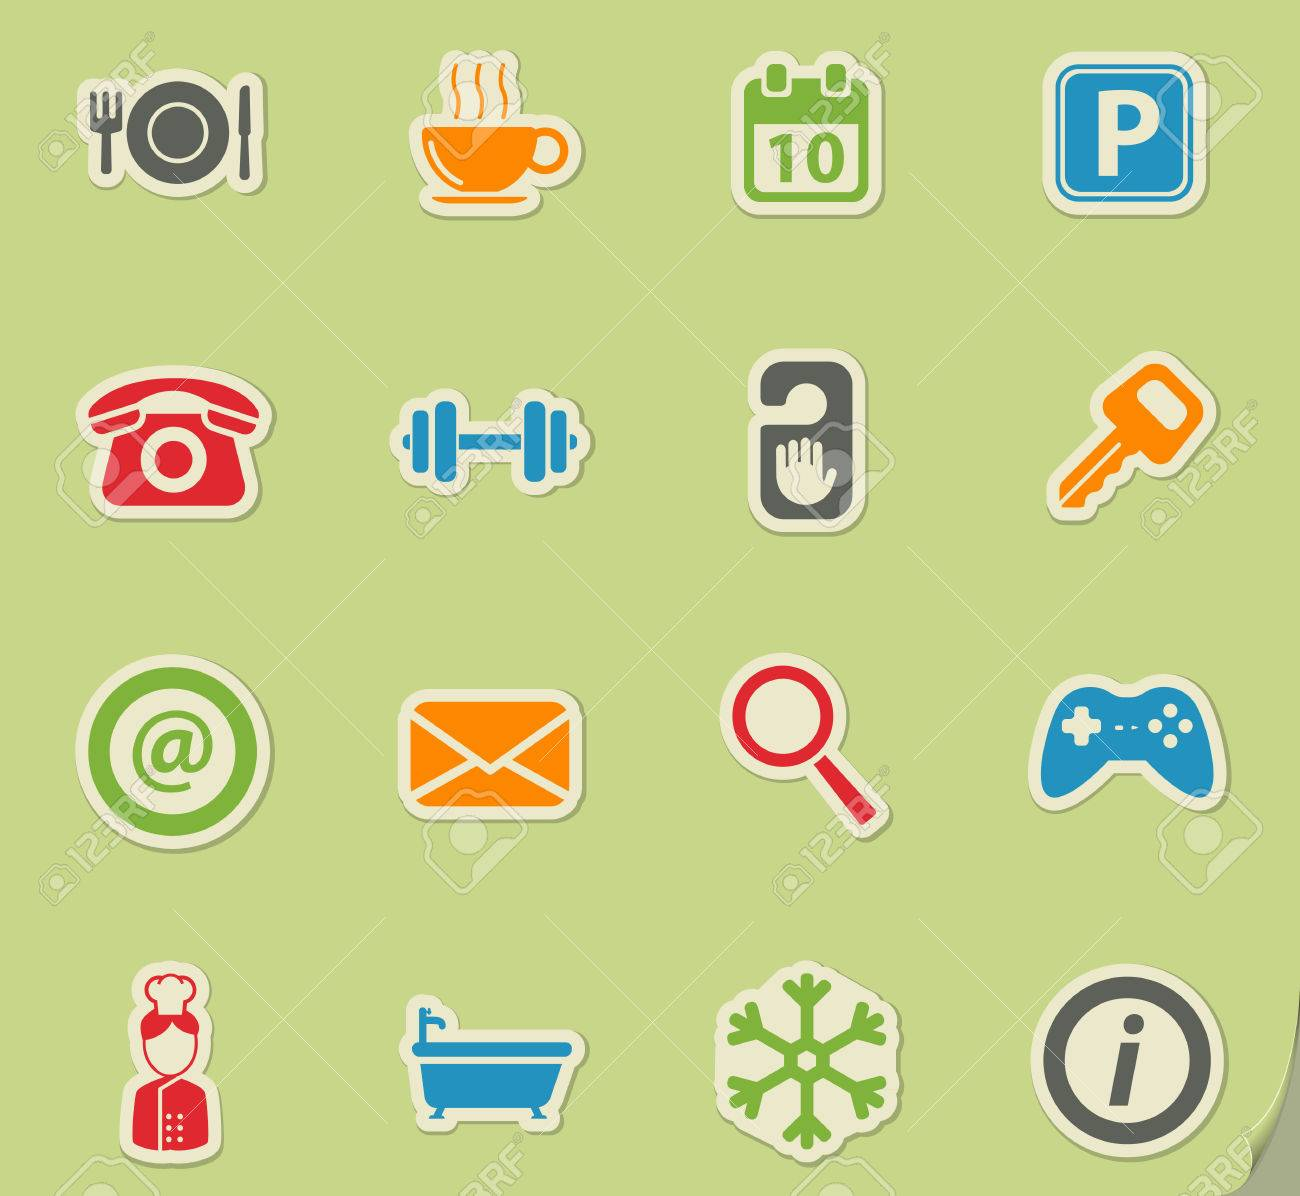 A Hotel Simply Hotel Simply Symbol For Web Icons And User Interface Royalty Free